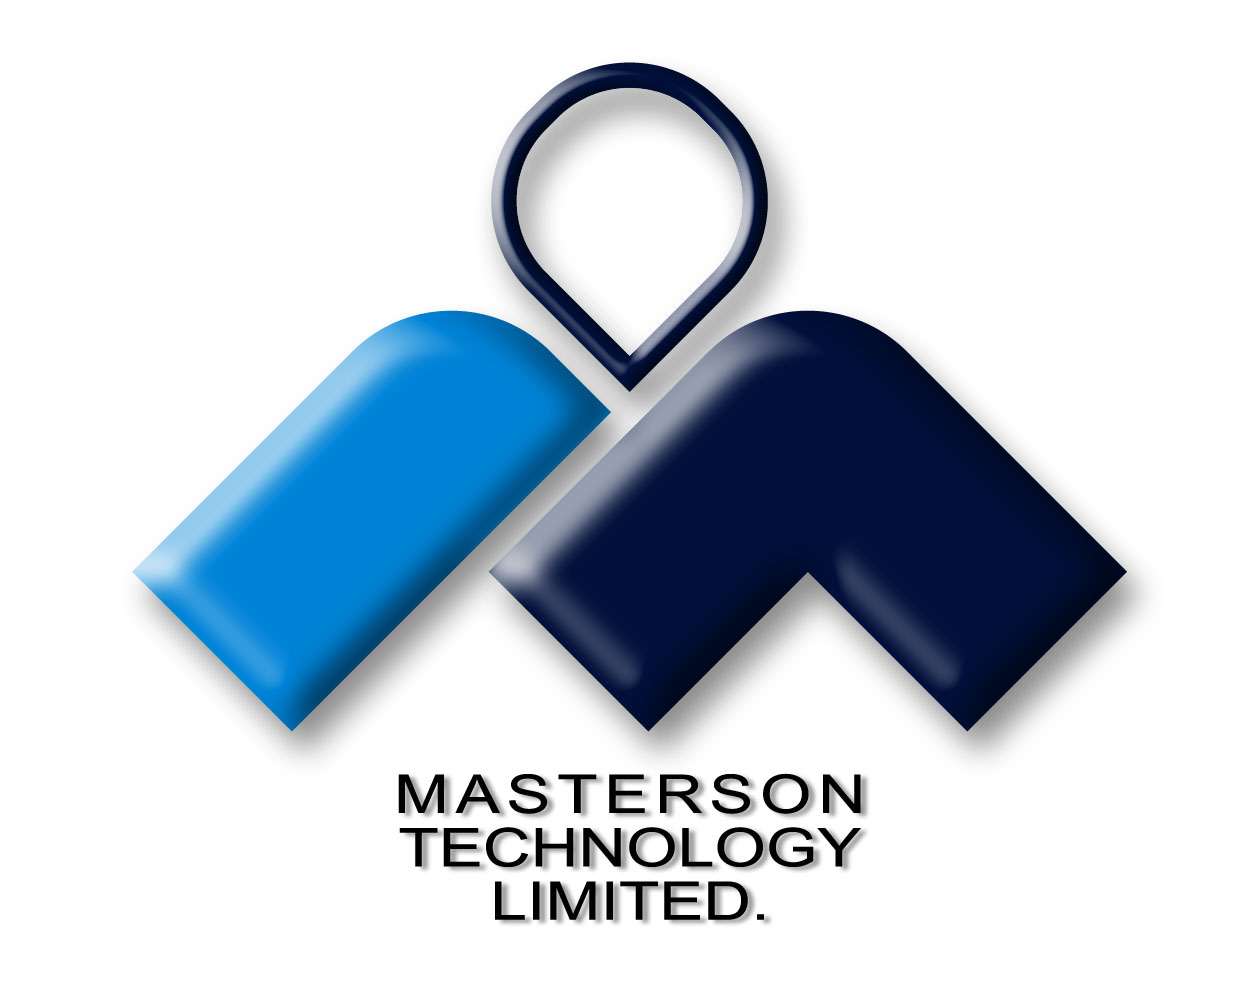 Masterson Technology Ltd